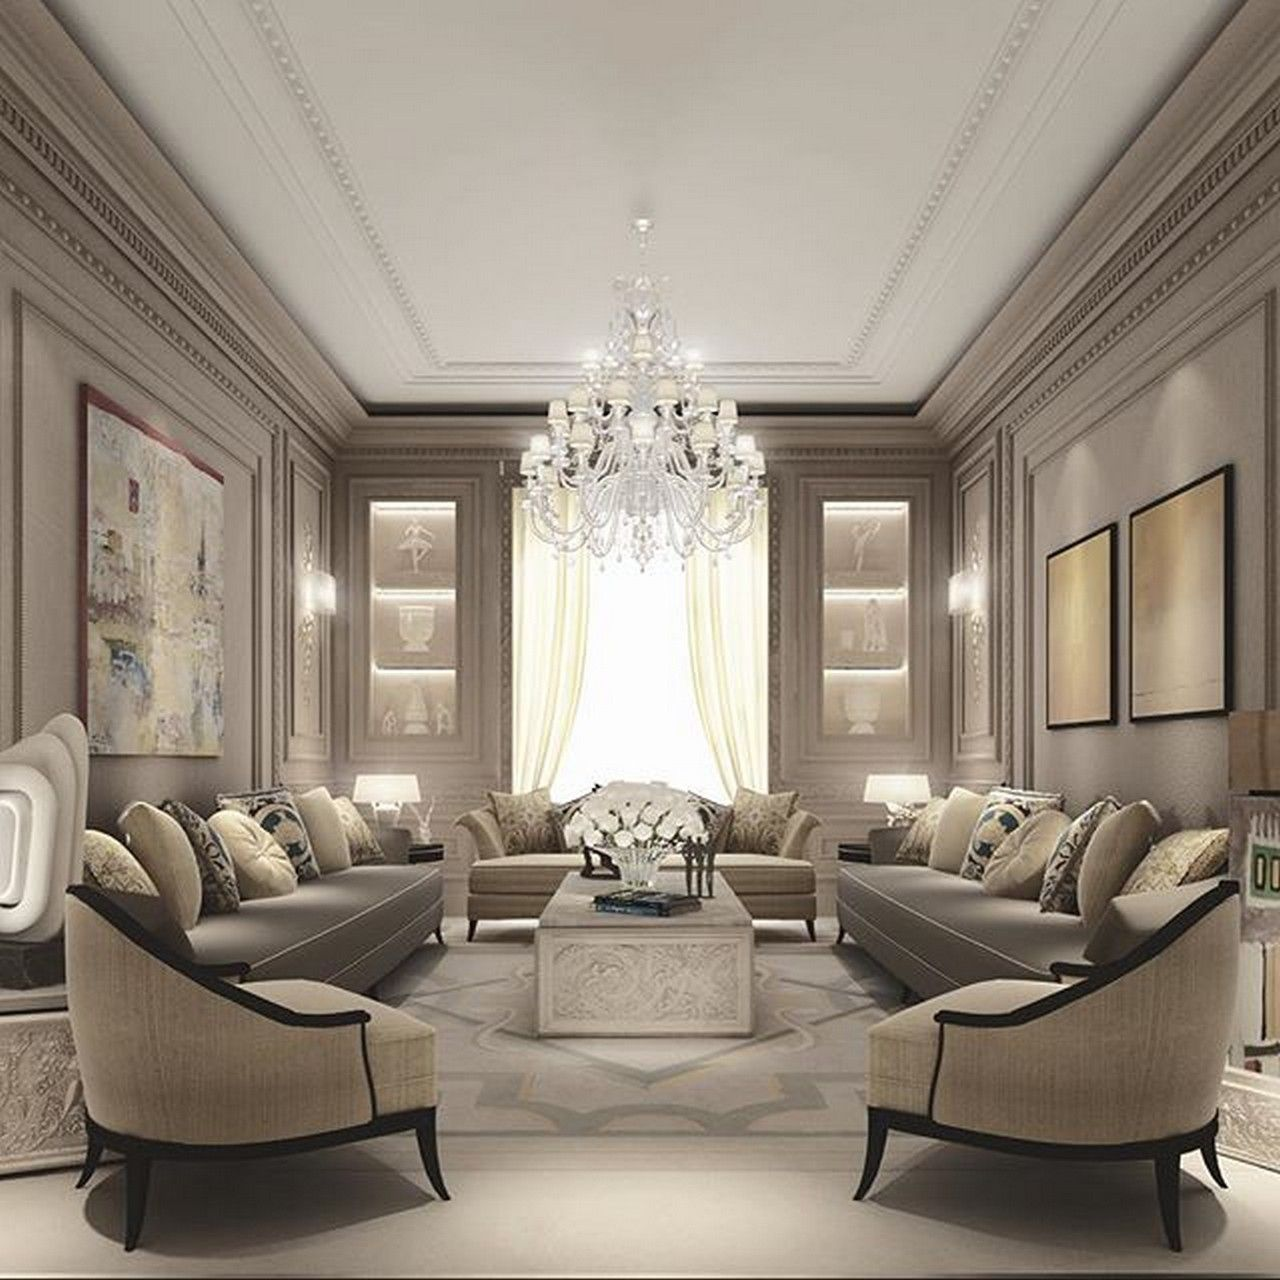 See More 37 Best Ideas Monochromatic Color Scheme For Living Room Homadein